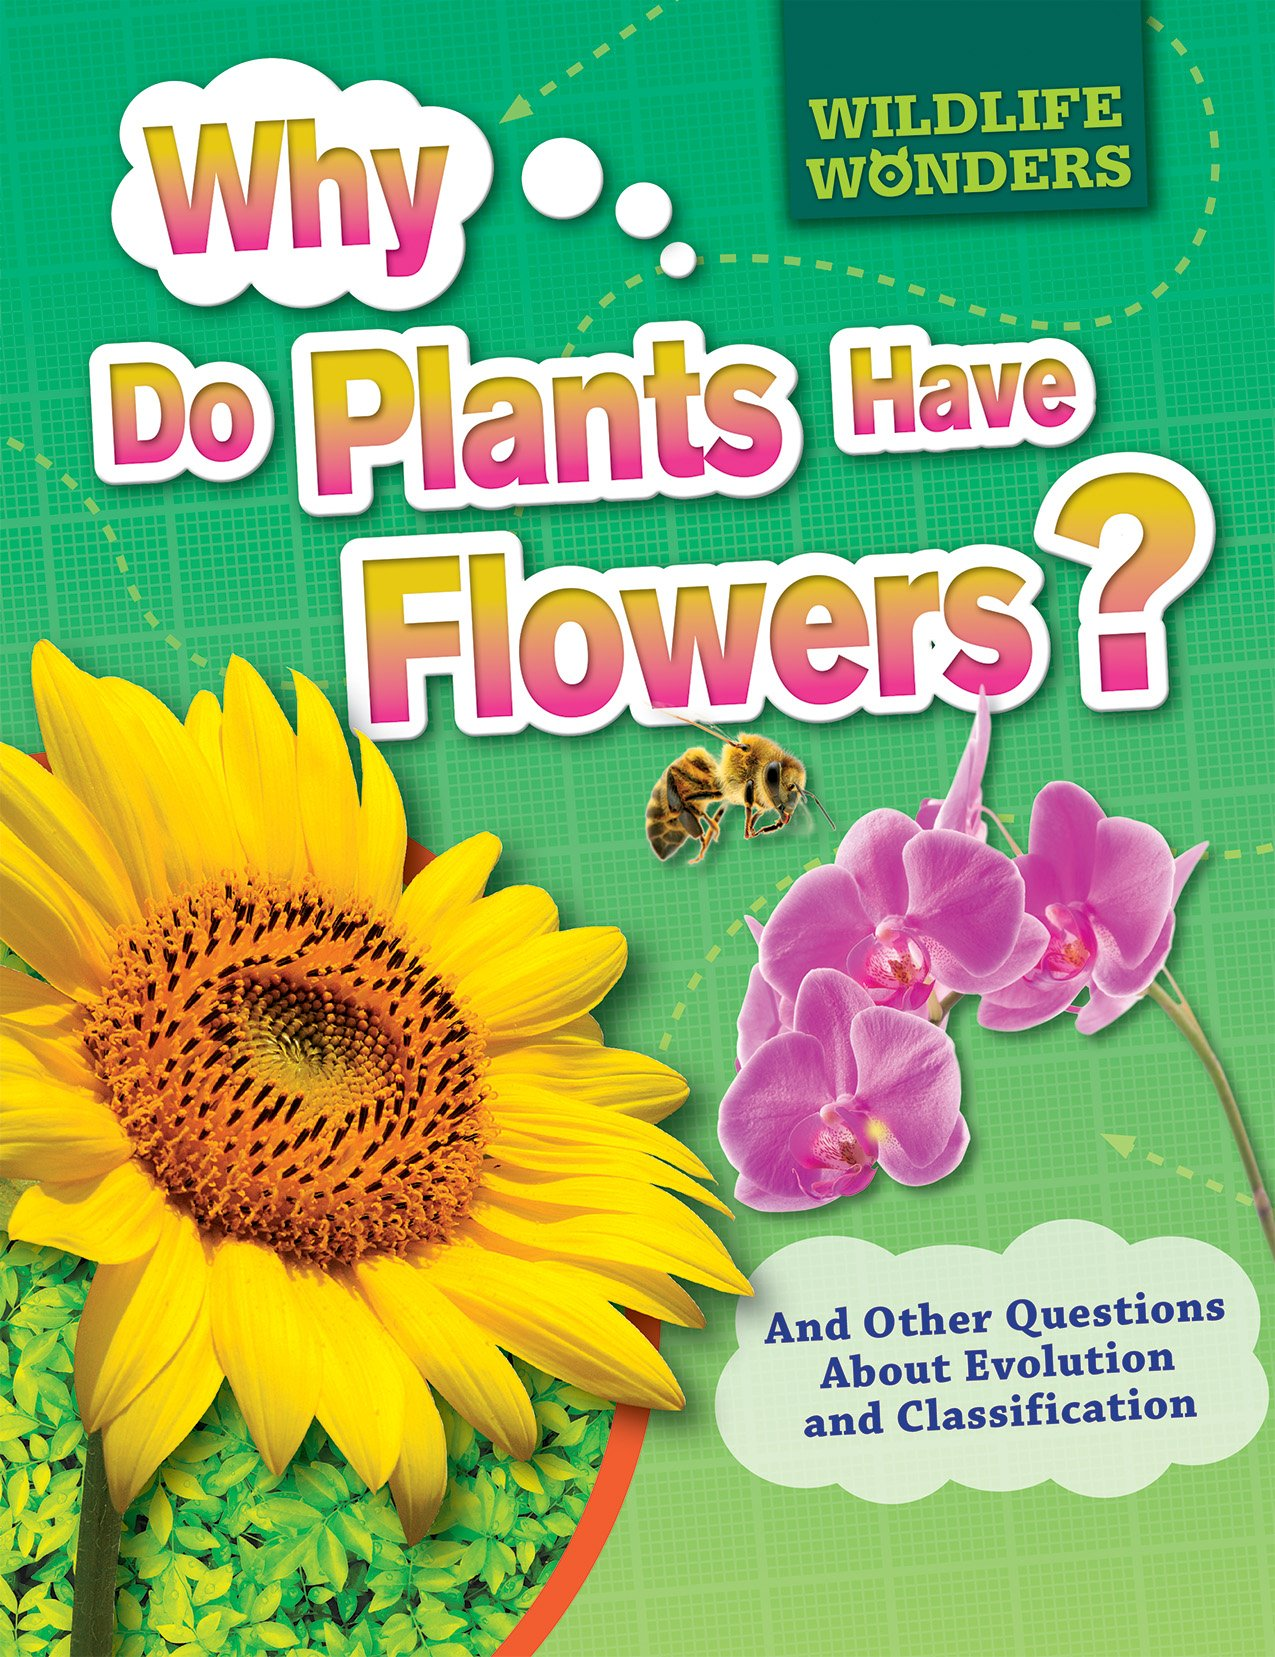 Why Do Plants Have Flowers?: And Other Questions About Evolution and Classification (Wildlife Wonders)